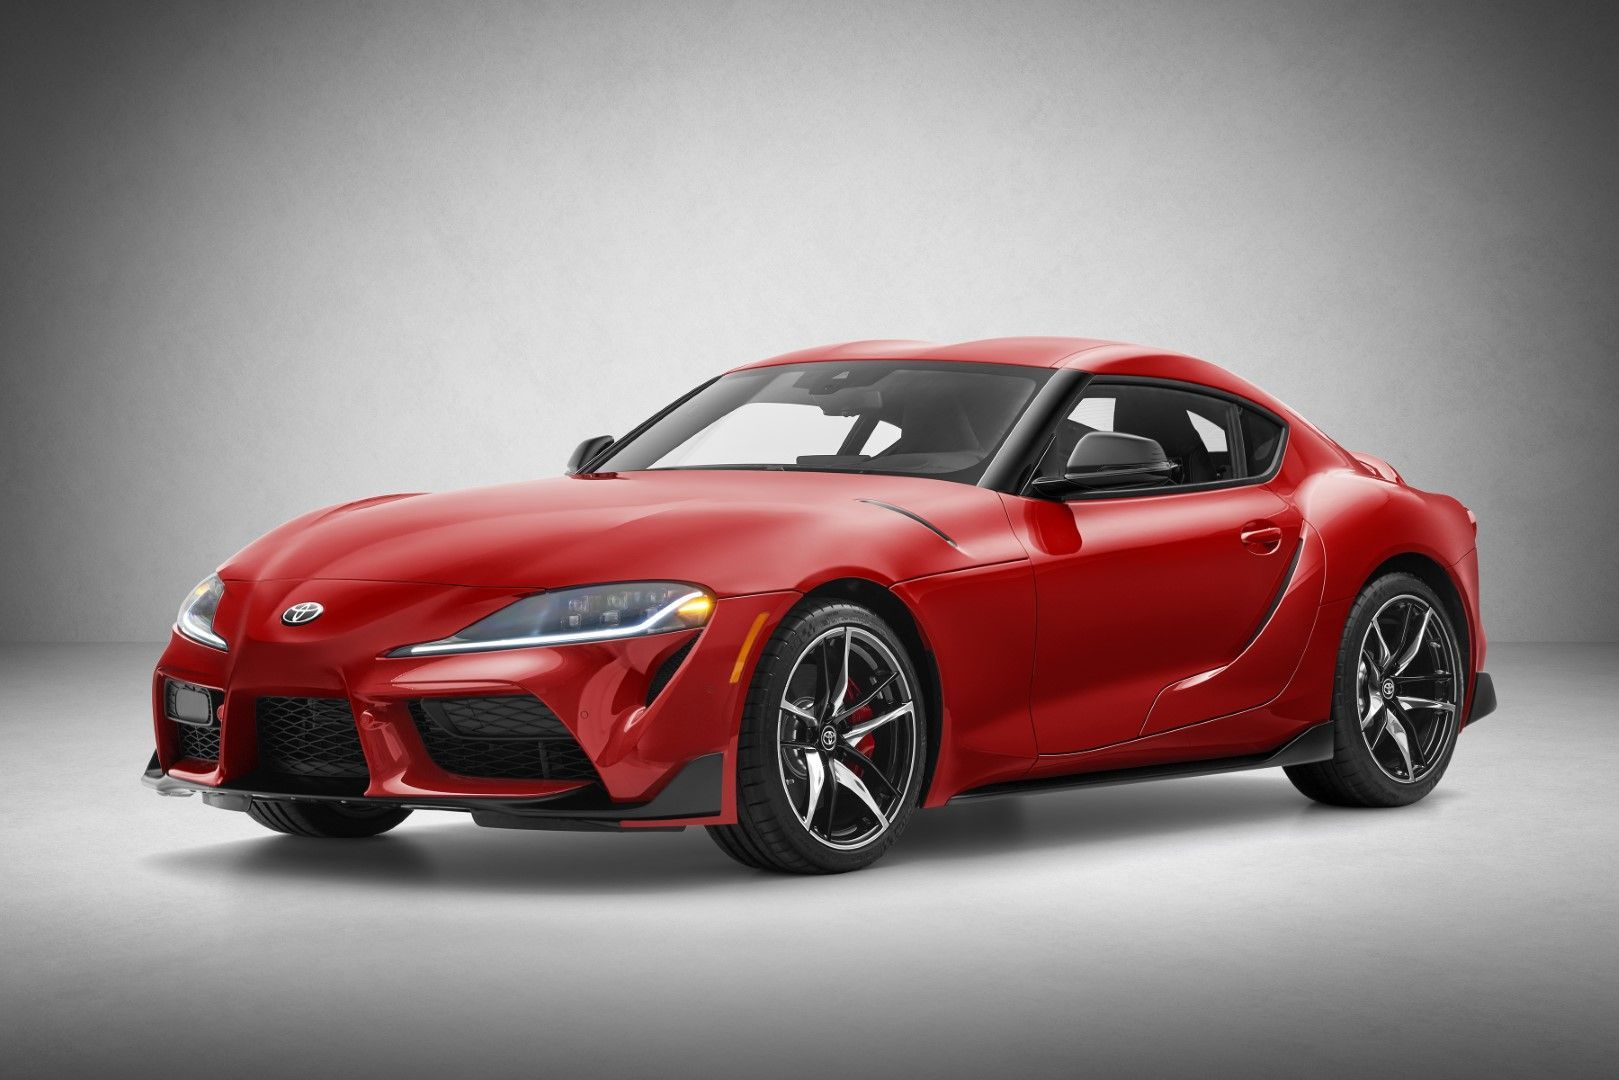 2020 Toyota Supra North American Model 3 0 Liter Turbocharged Inline Six With 335 Hp And 365 Lb Ft Of Torque Toyota Supra New Toyota Supra Toyota Usa